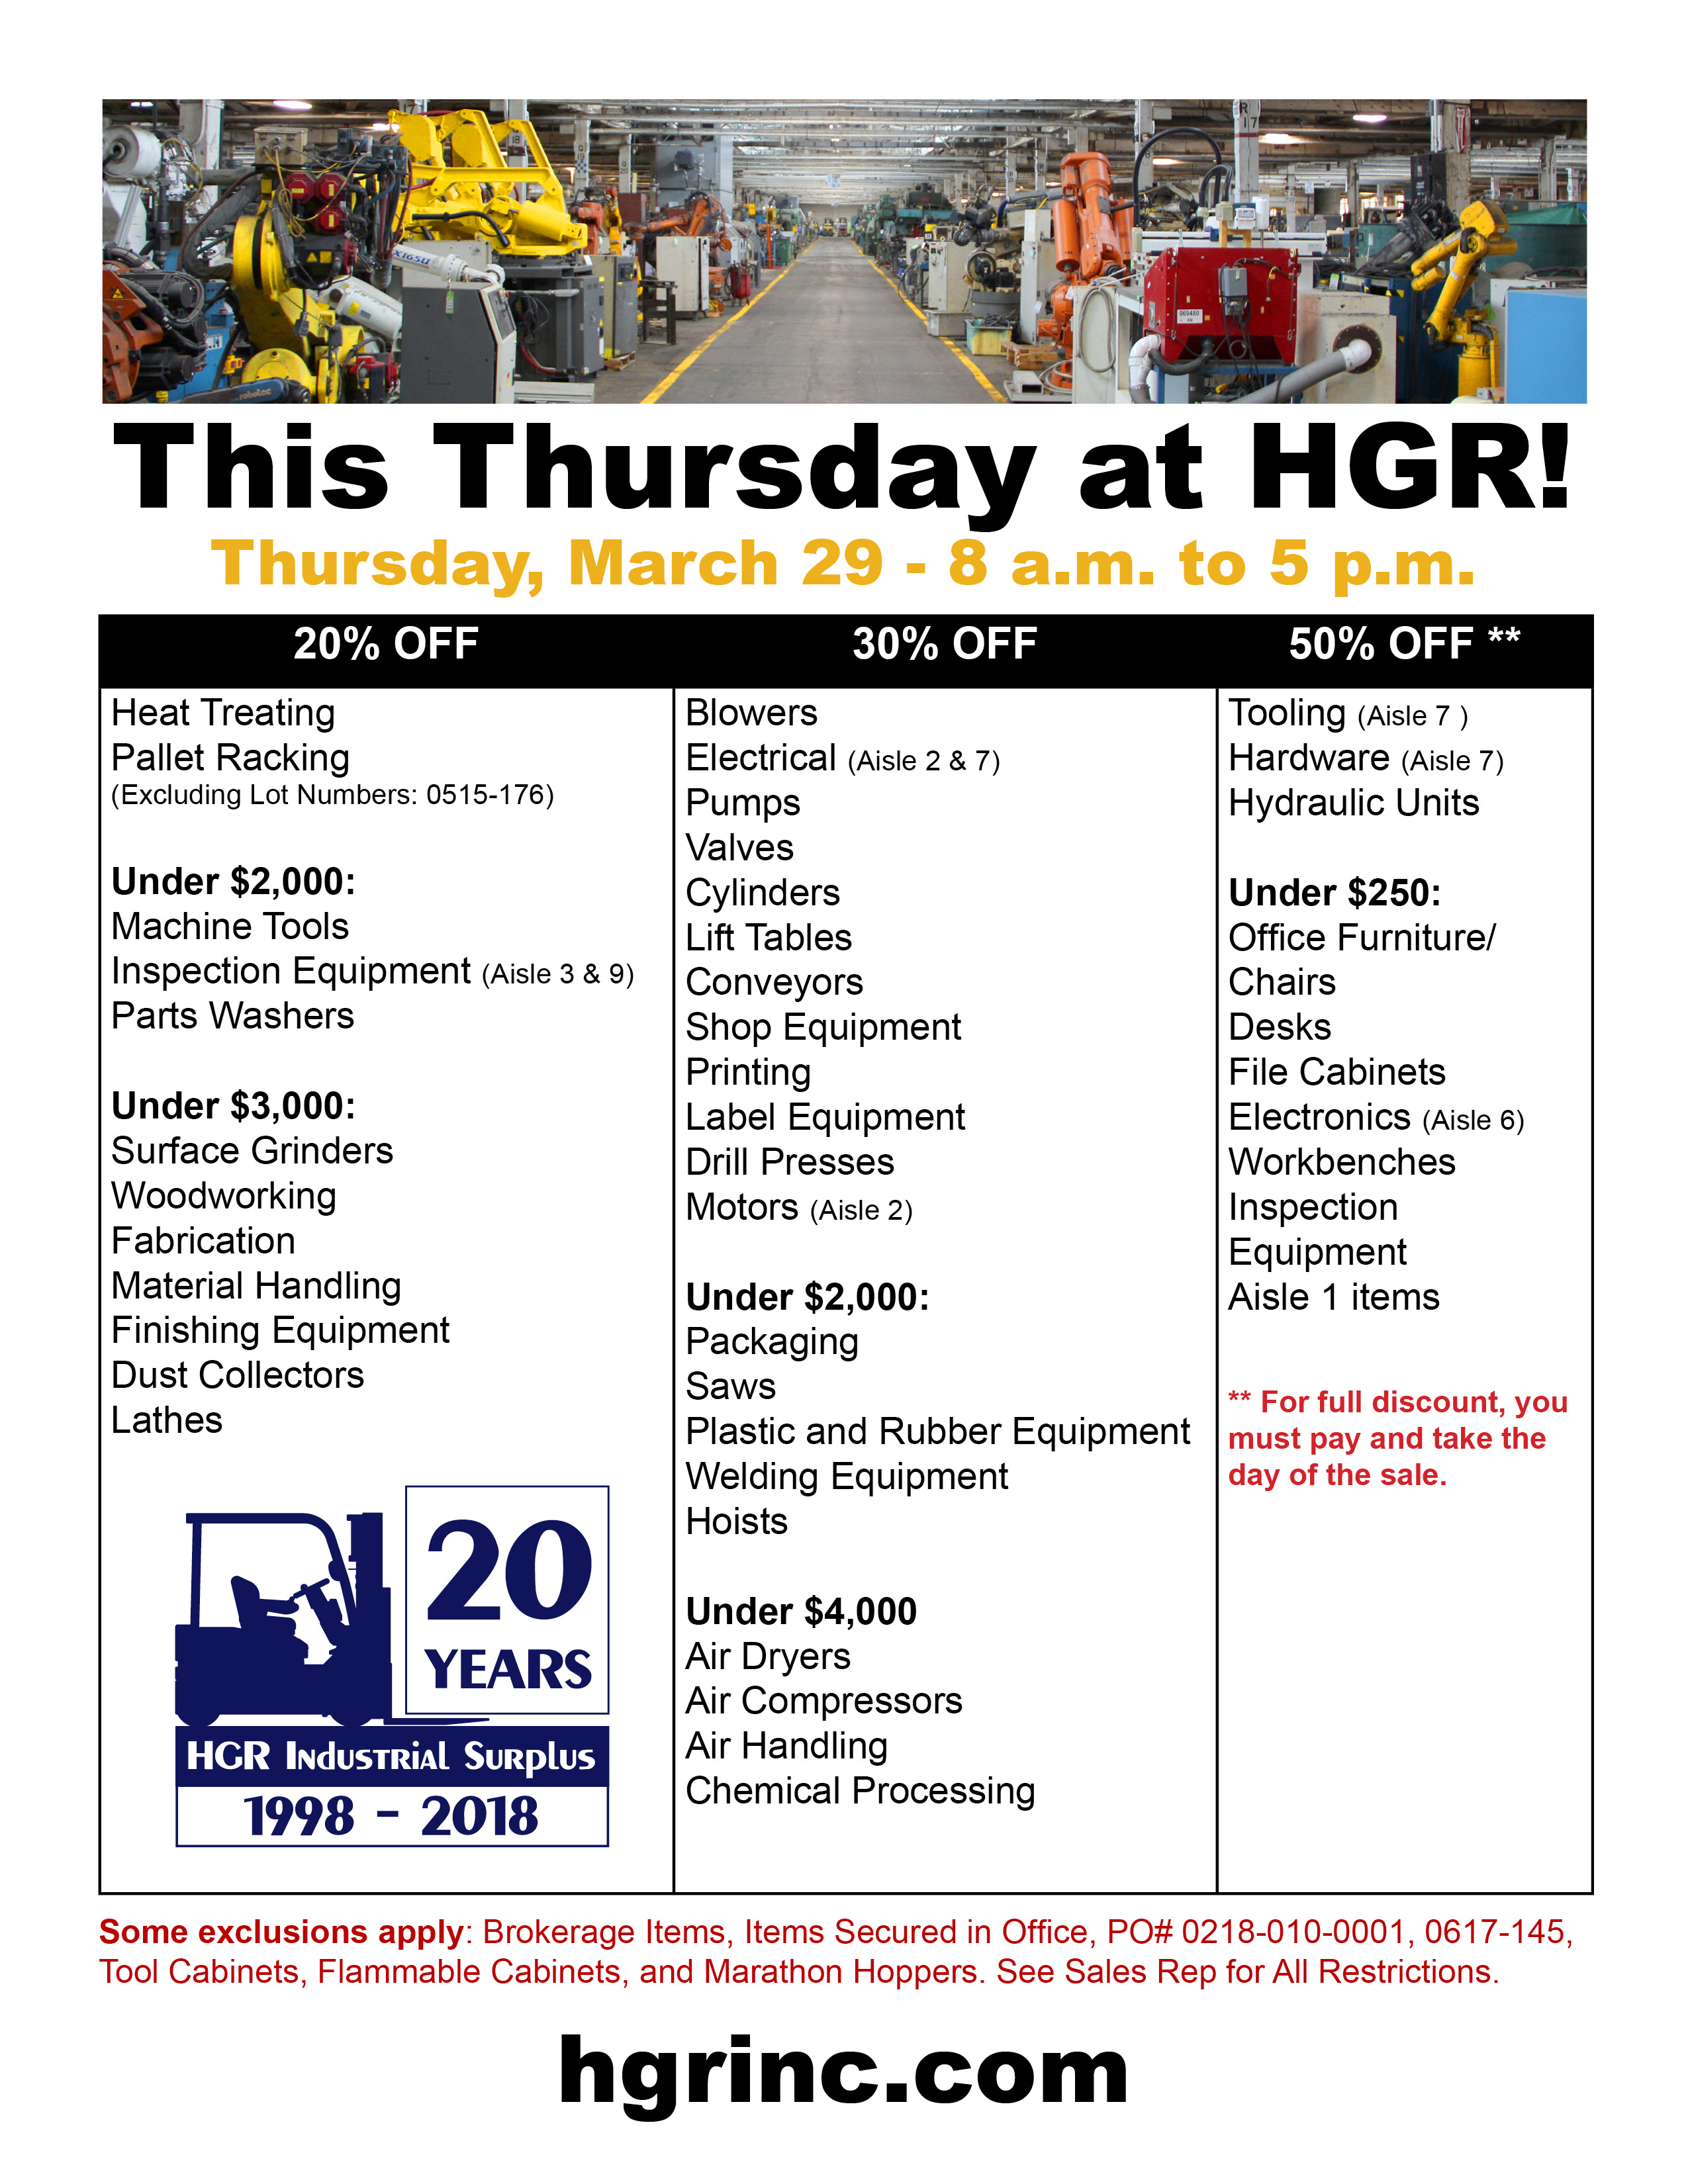 HGR Industrial Surplus March 2018 sale